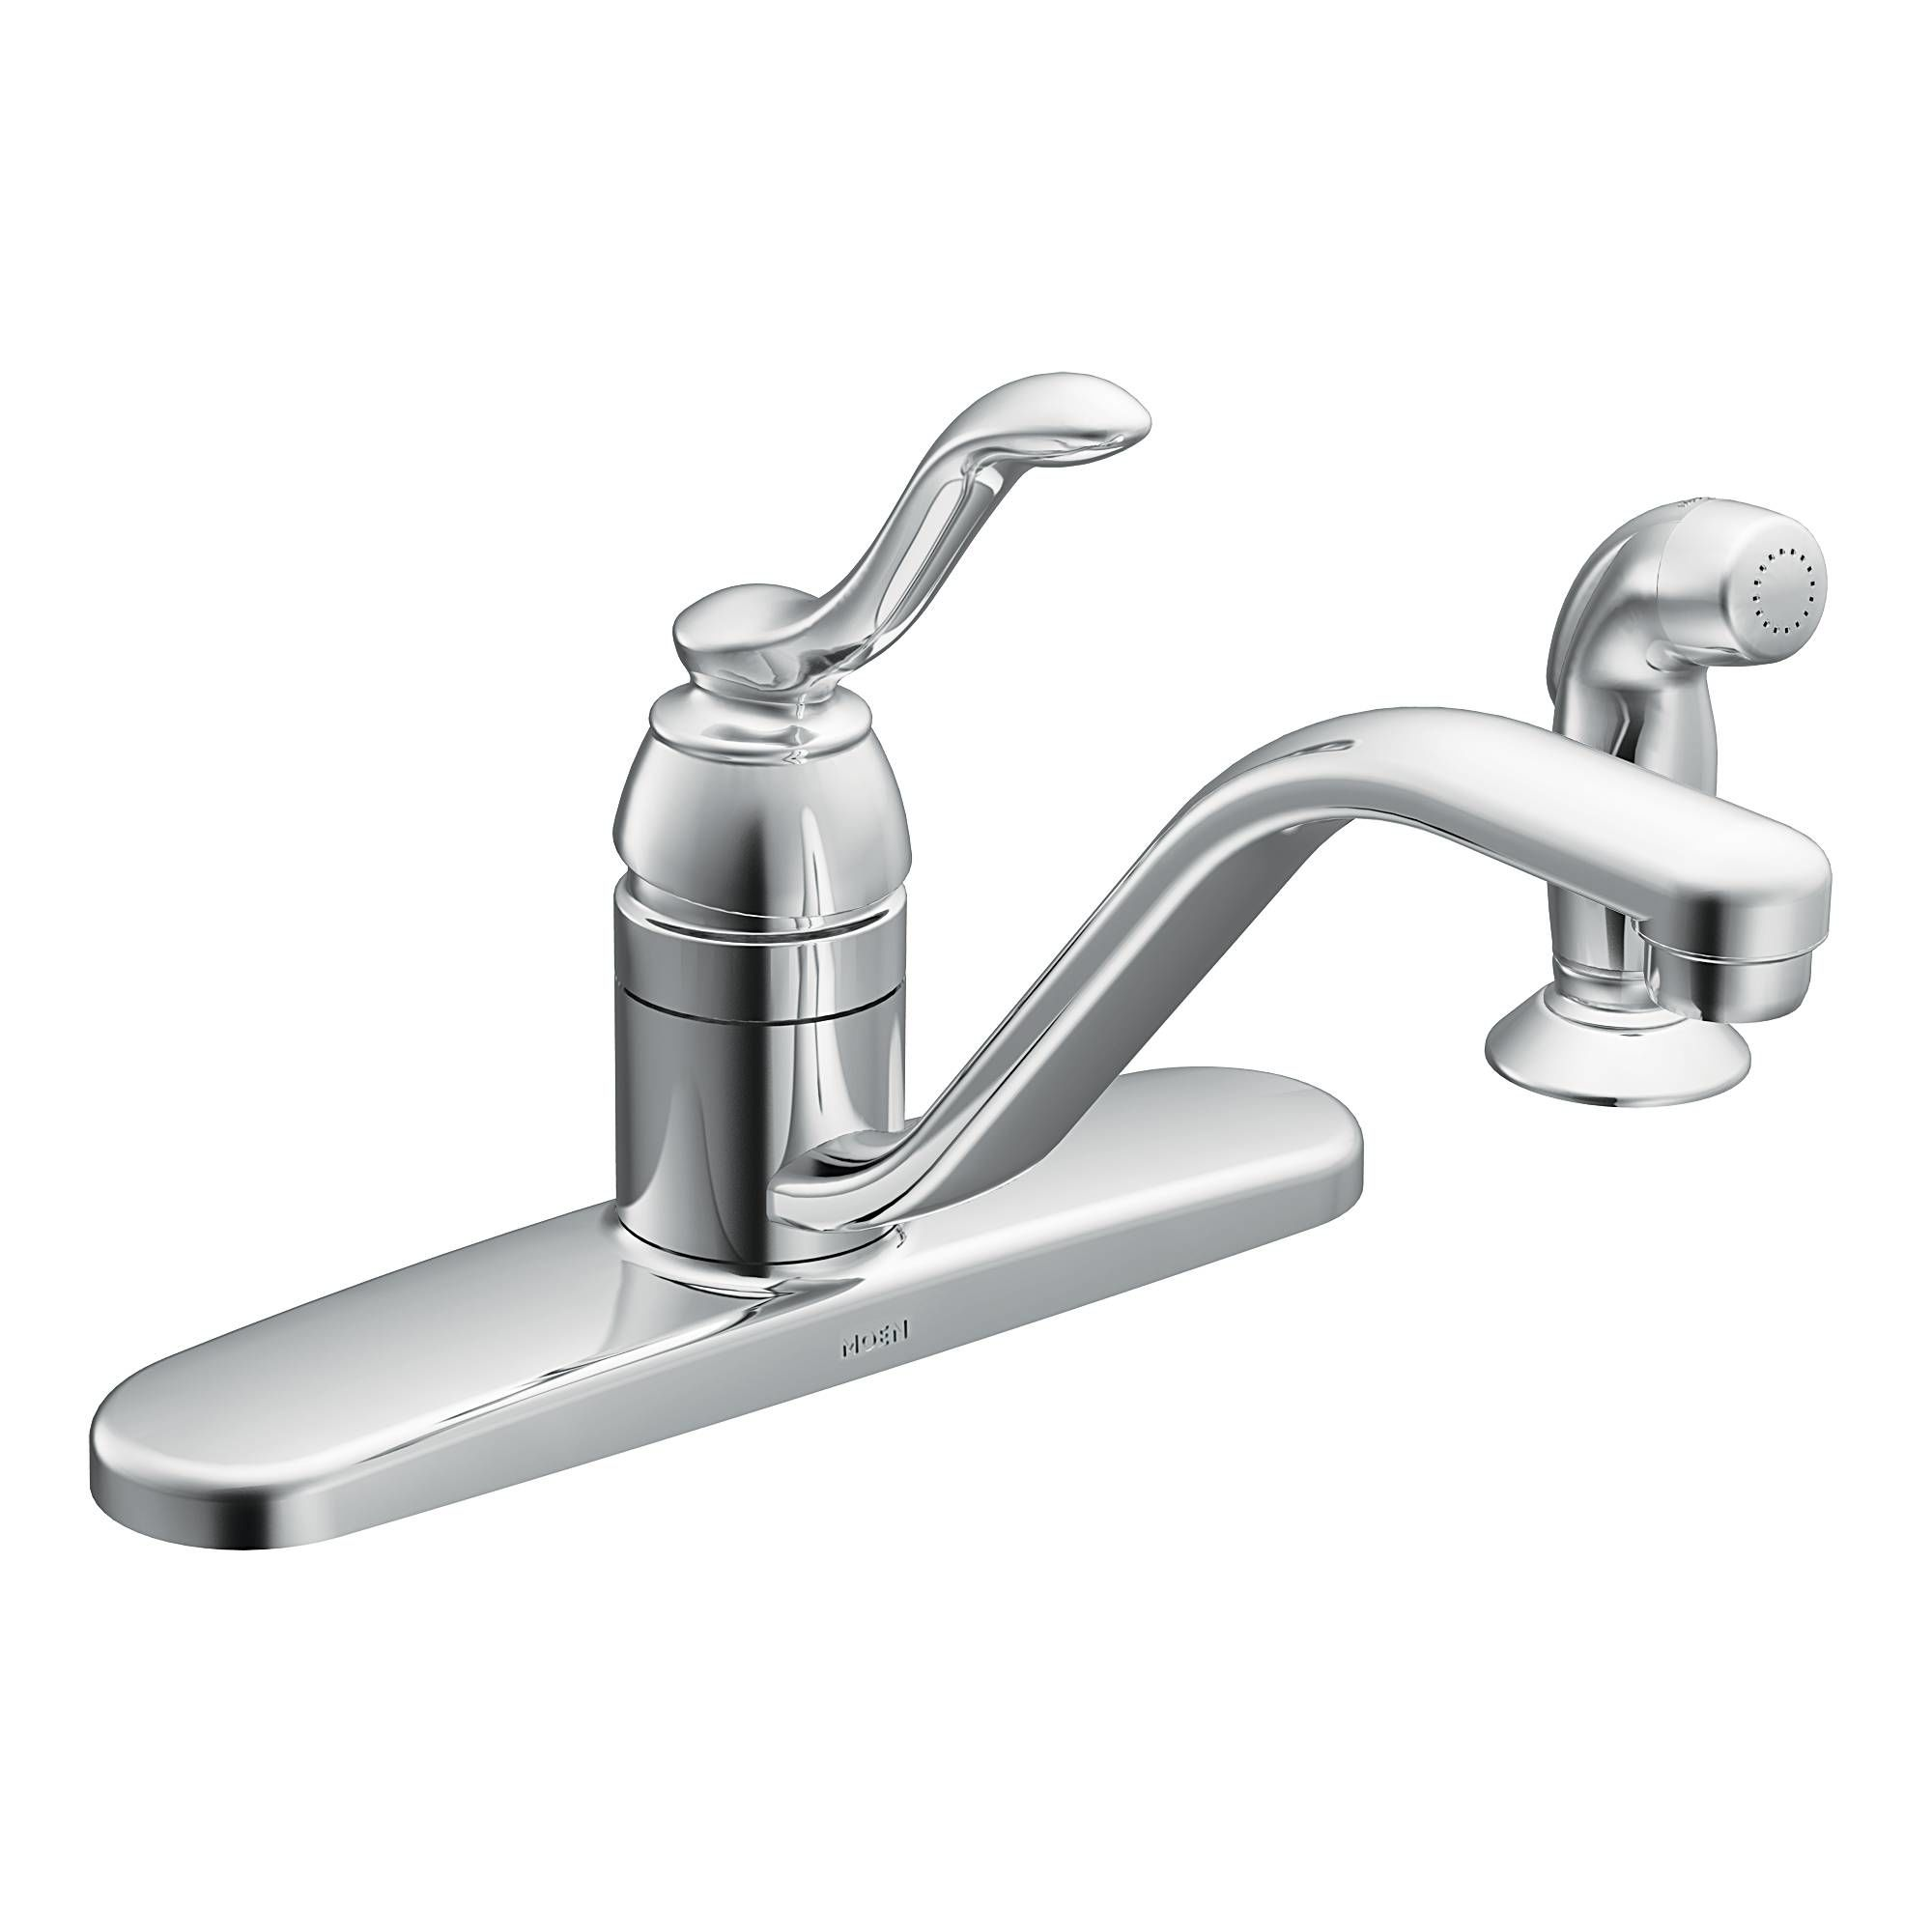 faucet replacement shower within of repair inspirational kitchen fresh that really gallery faucets delta monitor sink parts